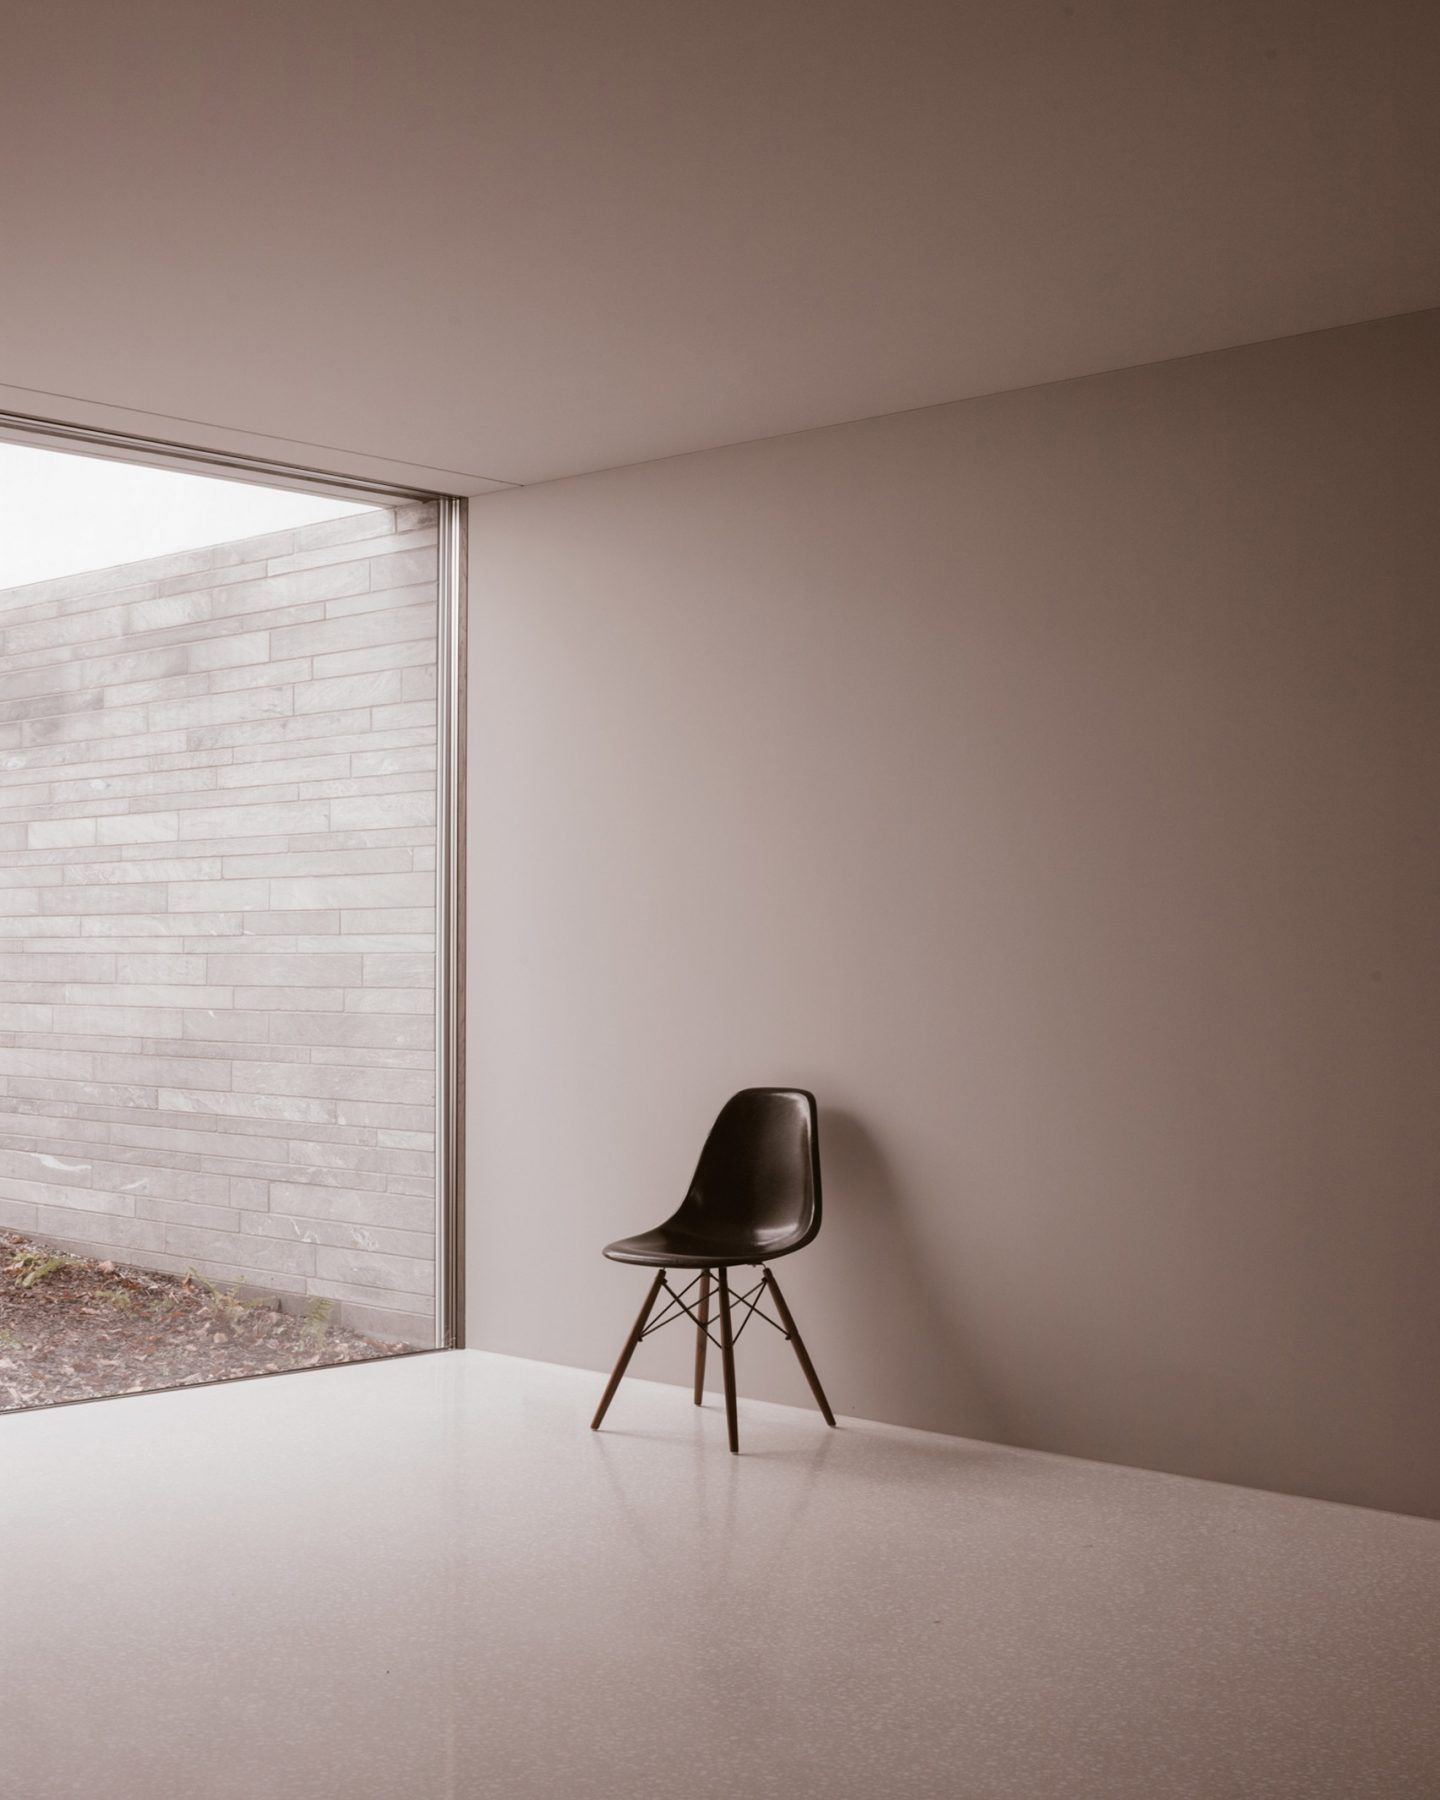 IGNANT-Architecture-Think-Architecture-Minimal-House-012